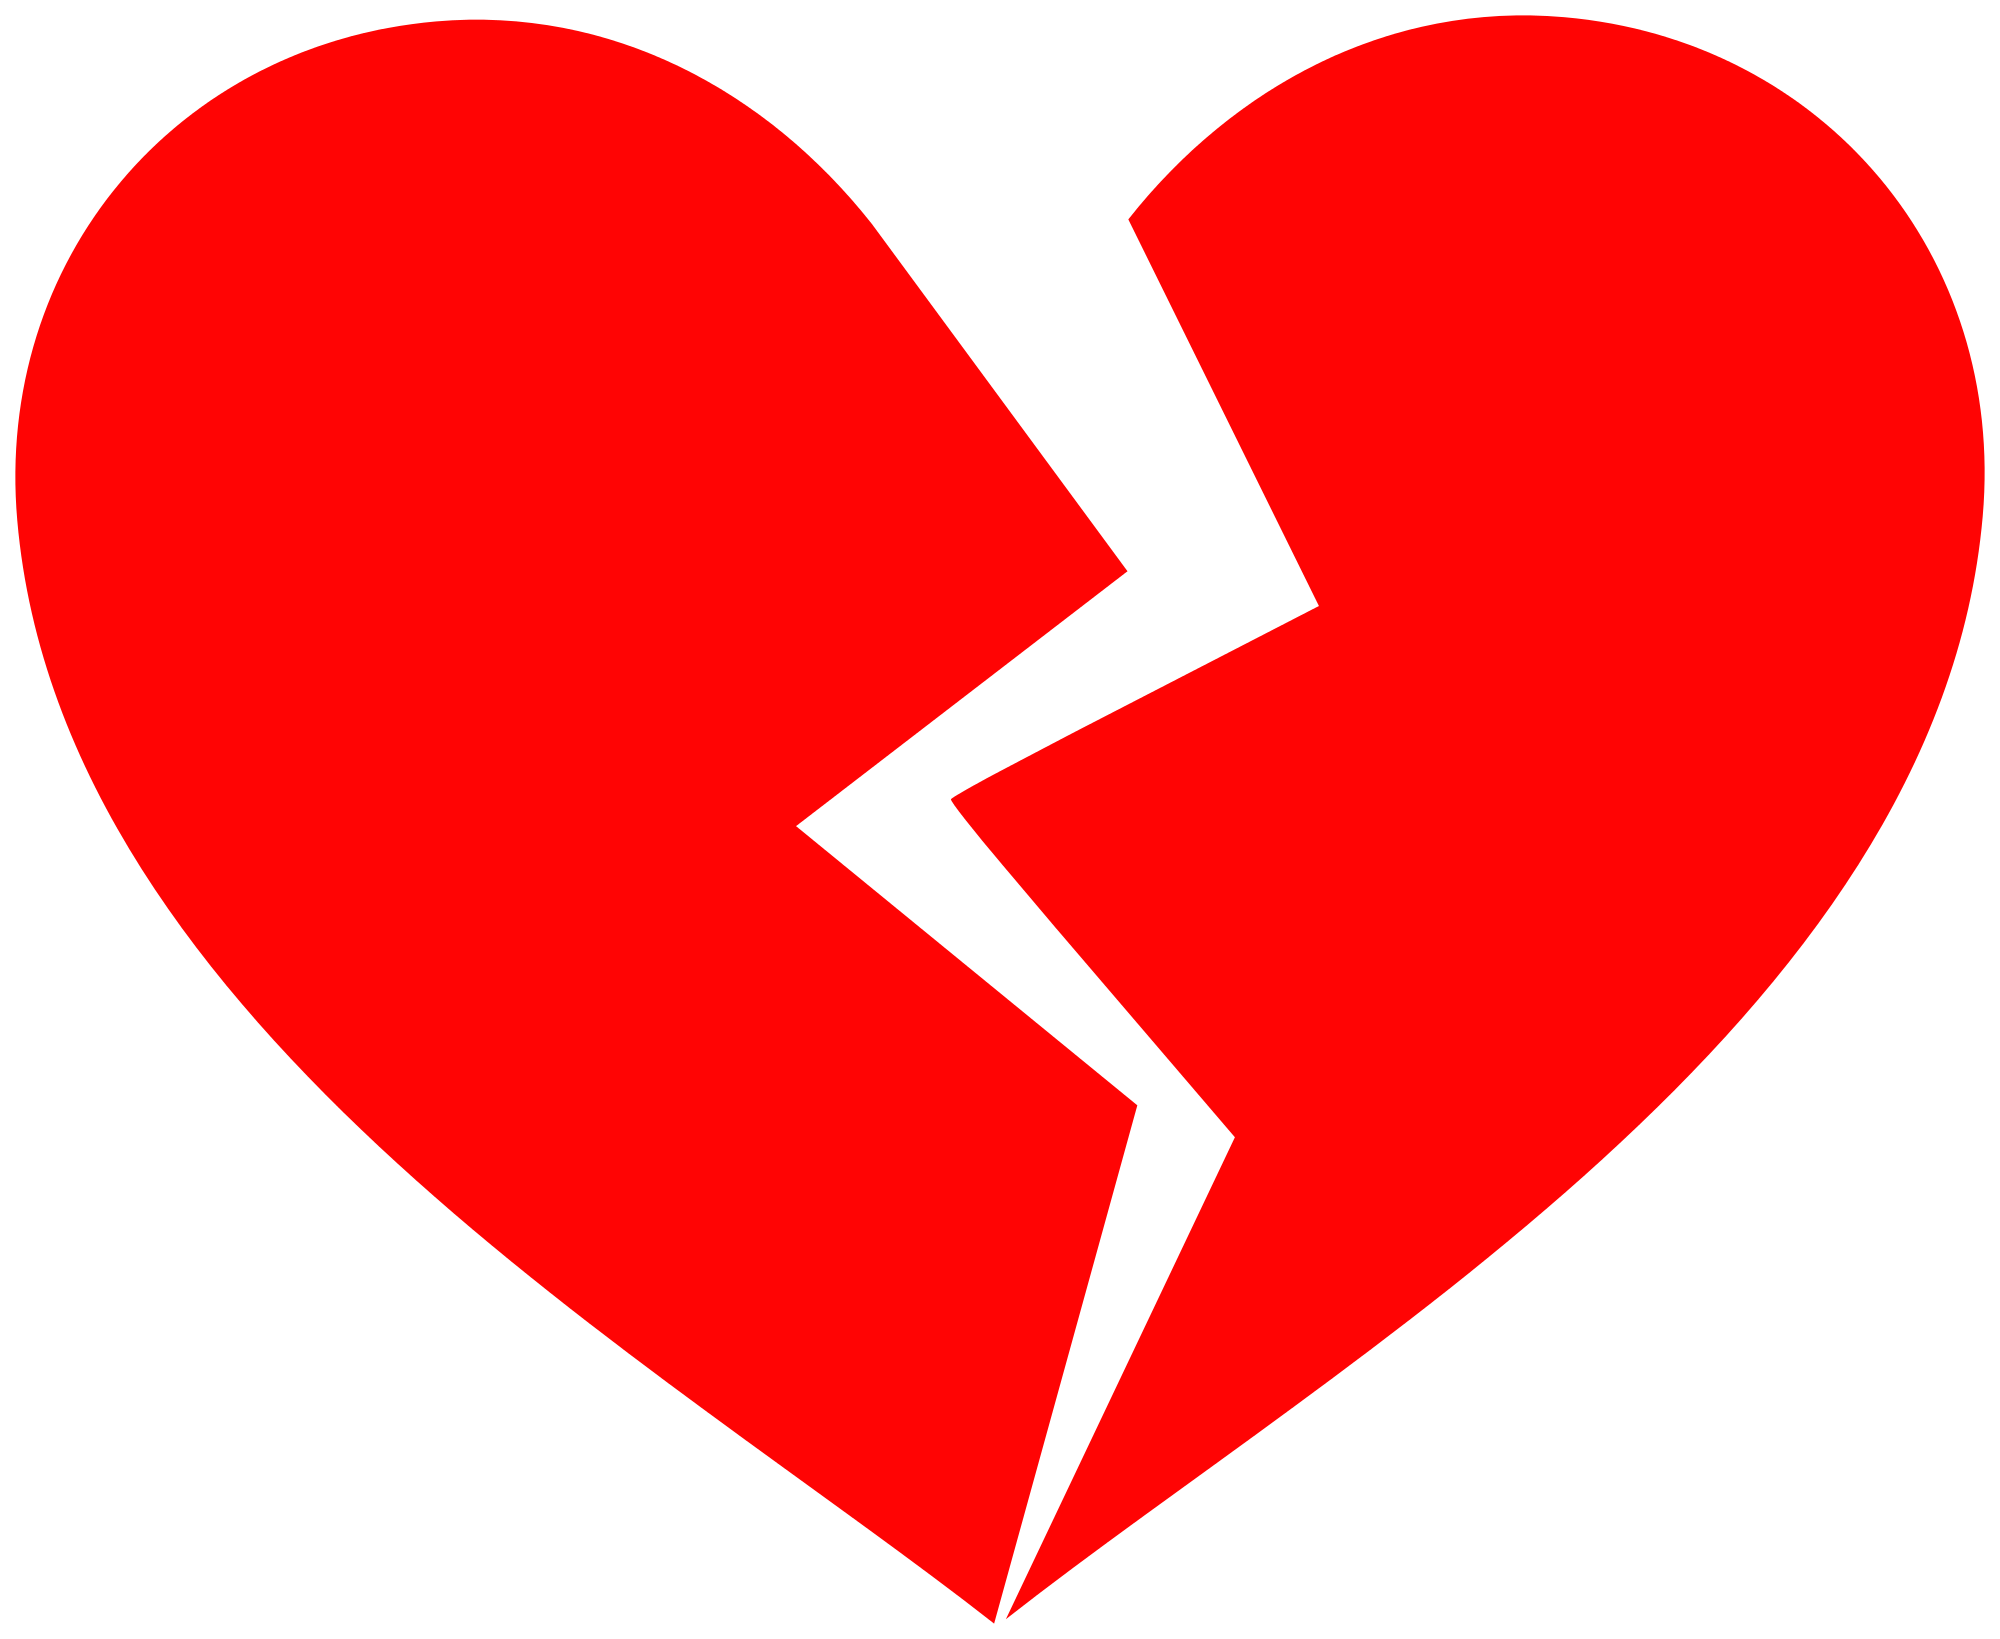 Broken heart with bandage clipart